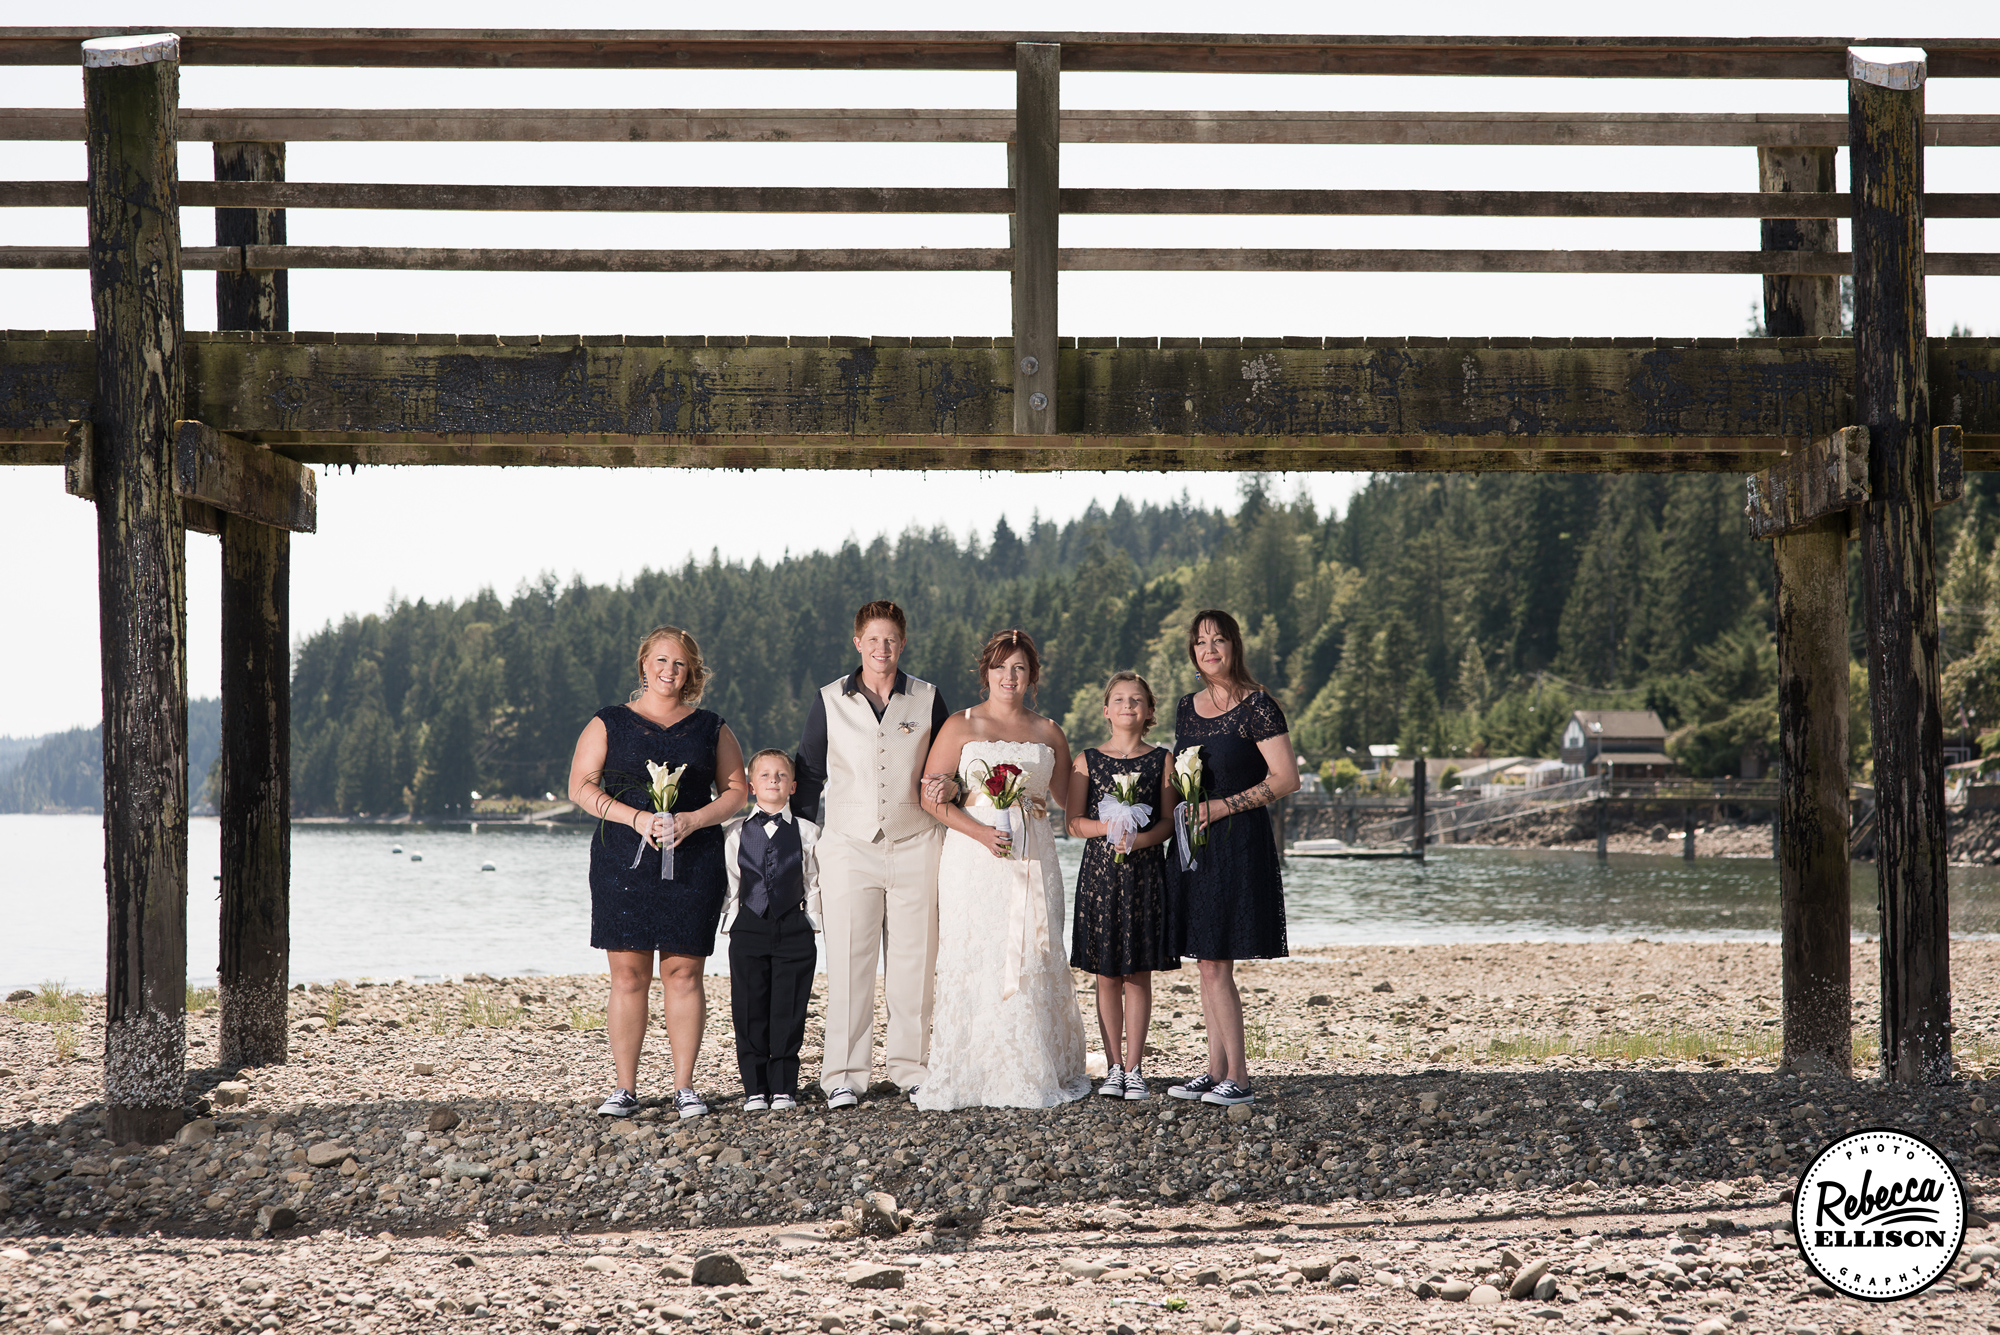 Wedding party portraits under a wooden dock at a beachfront wedding featuring Navy blue dresses and a white belted wedding dress